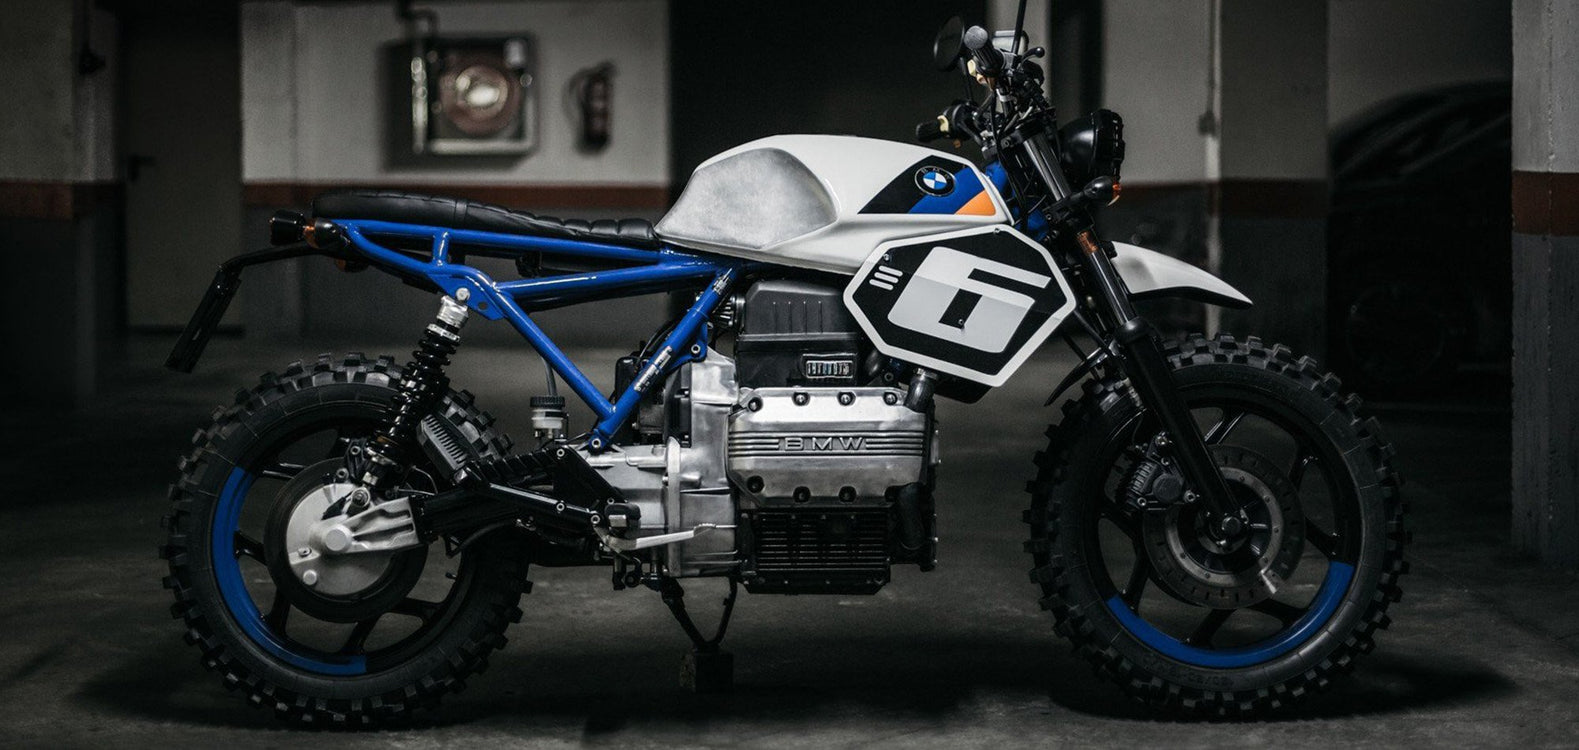 BMW K75 Scrambler-The Foundry Mc.-TheArsenale